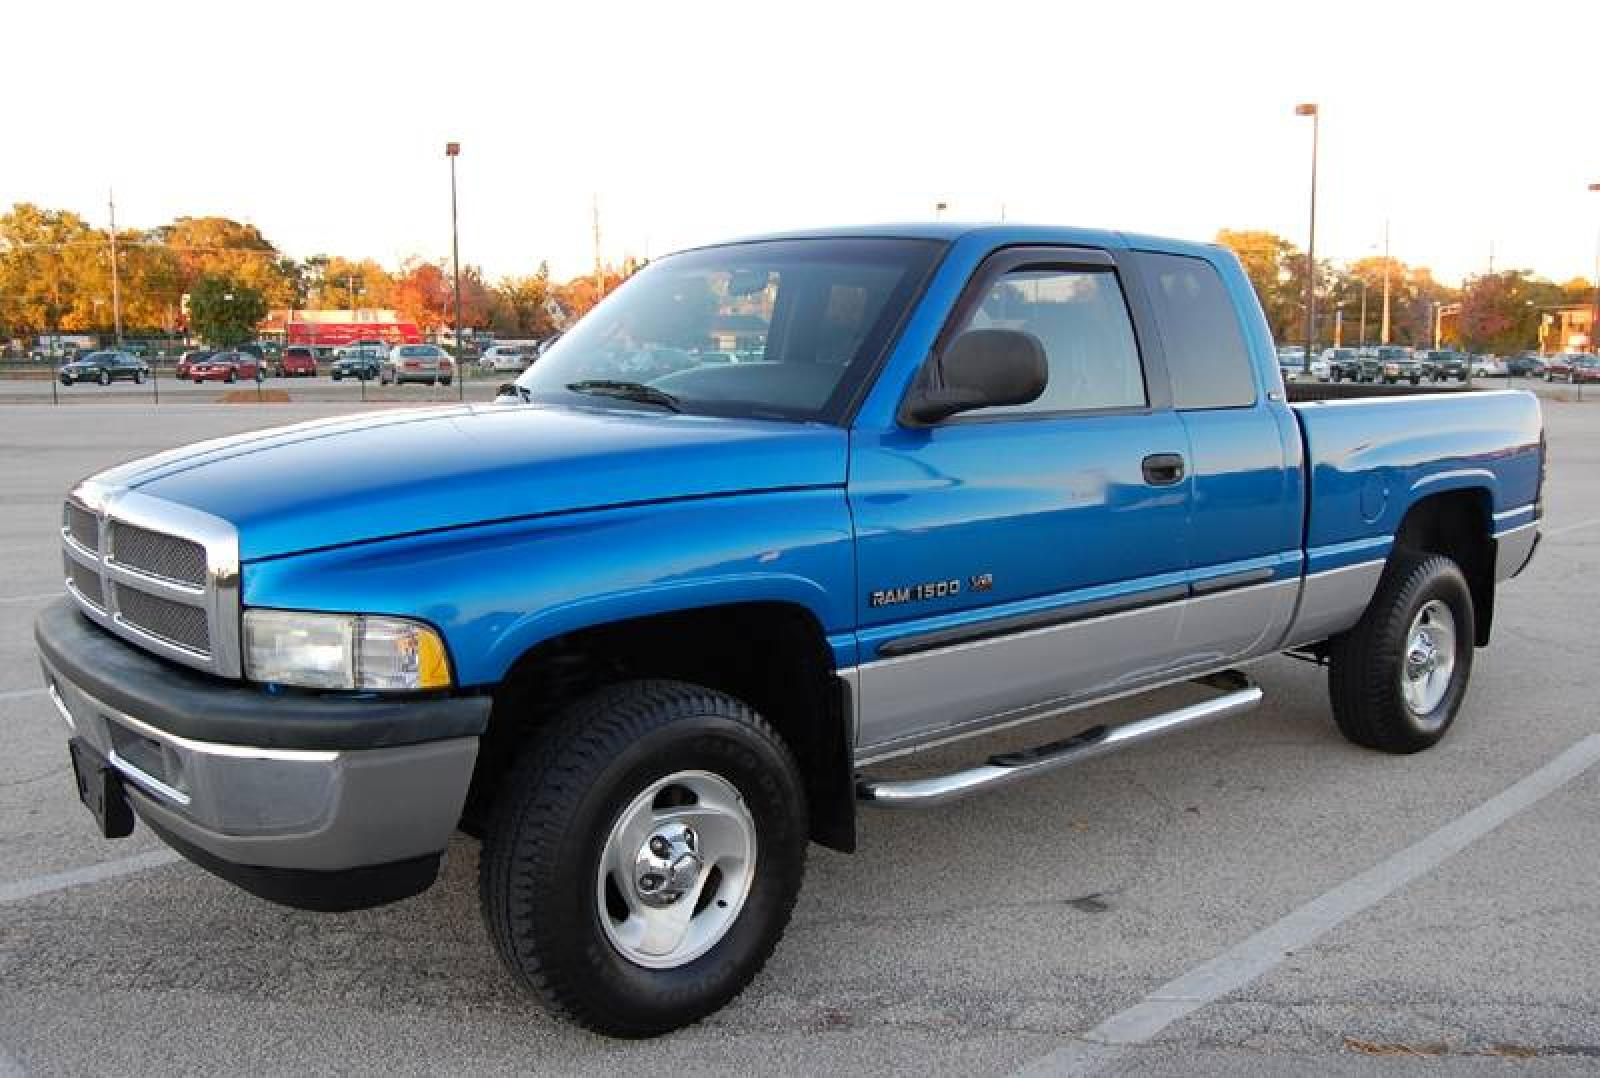 2001 Dodge Ram 1500 4 Door >> 2001 Dodge Ram Pickup 1500 - Information and photos - ZombieDrive